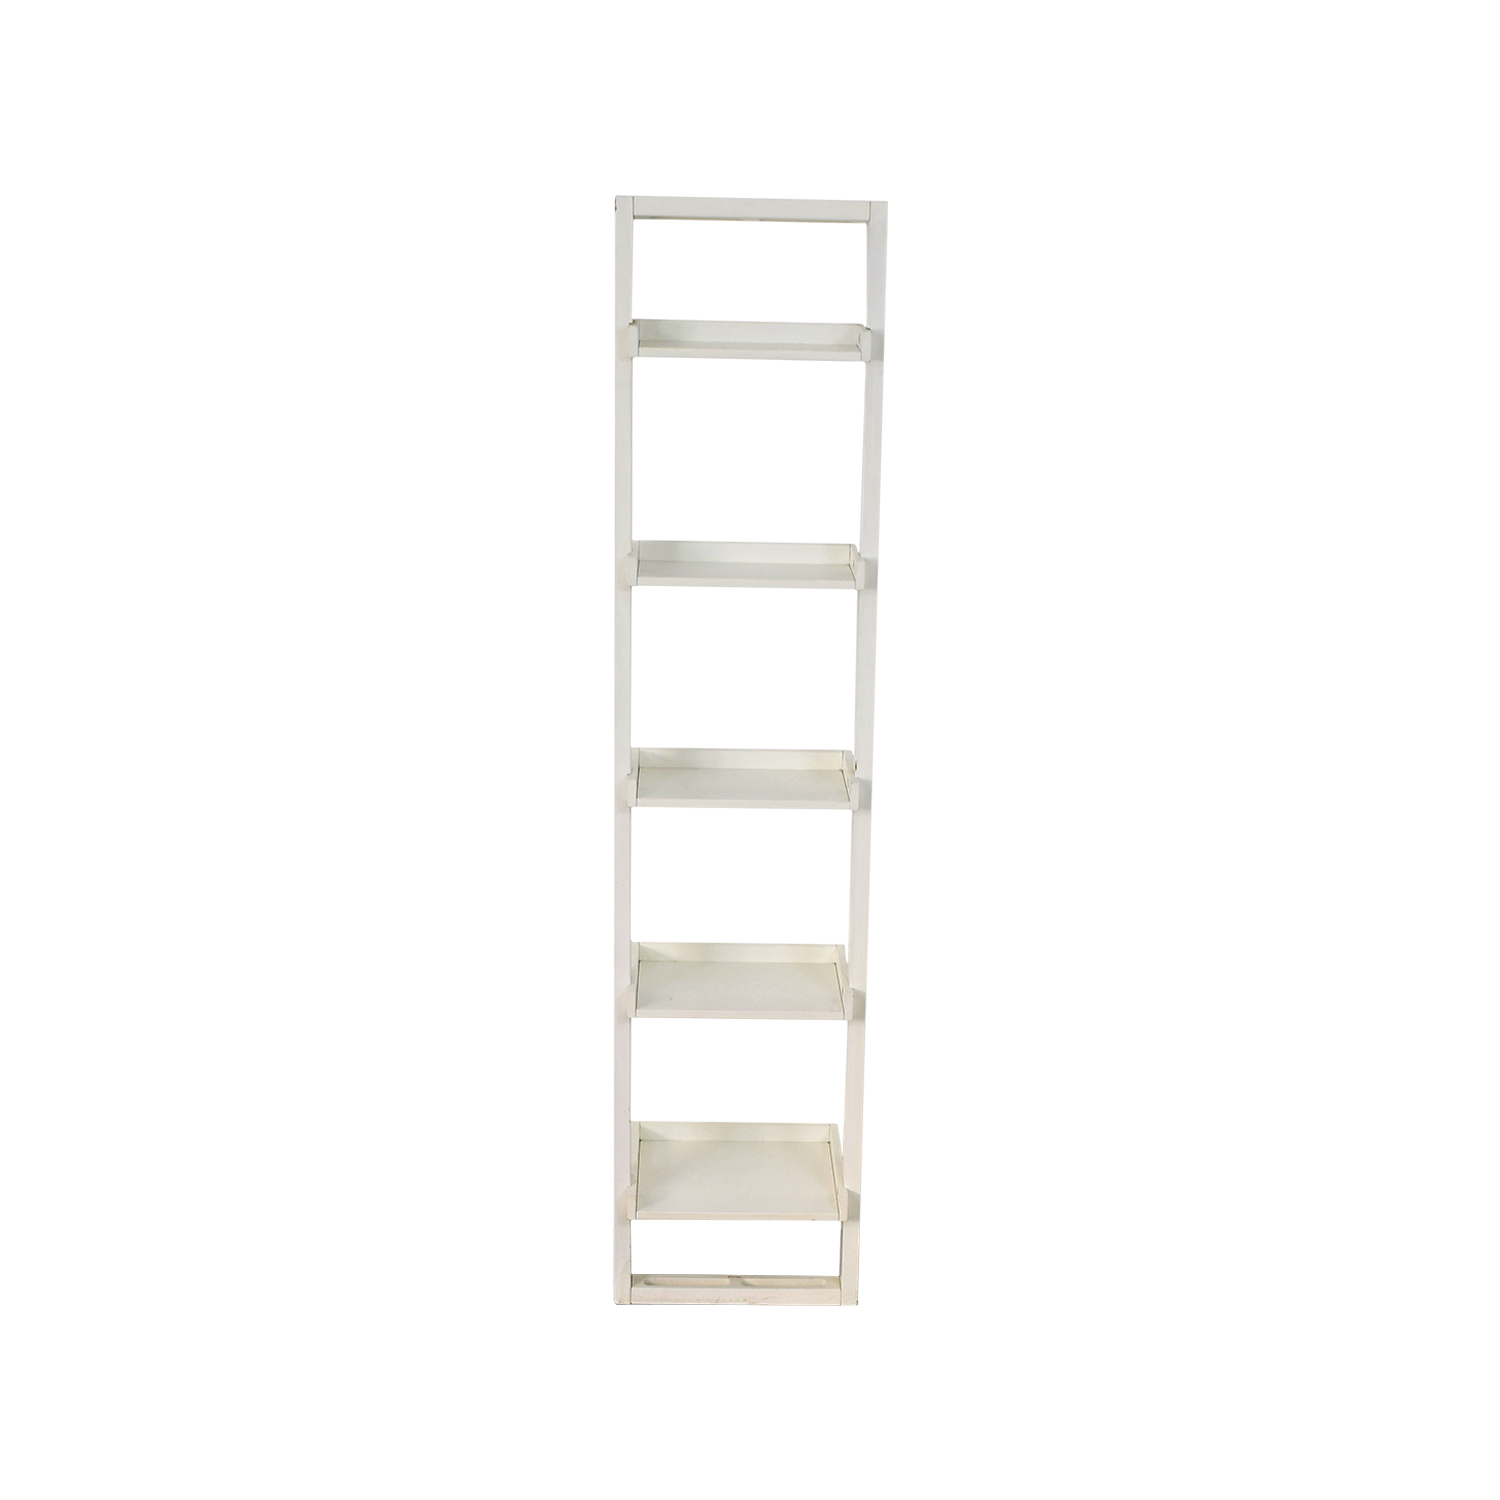 Crate & Barrel Sloane Leaning Bookcase sale